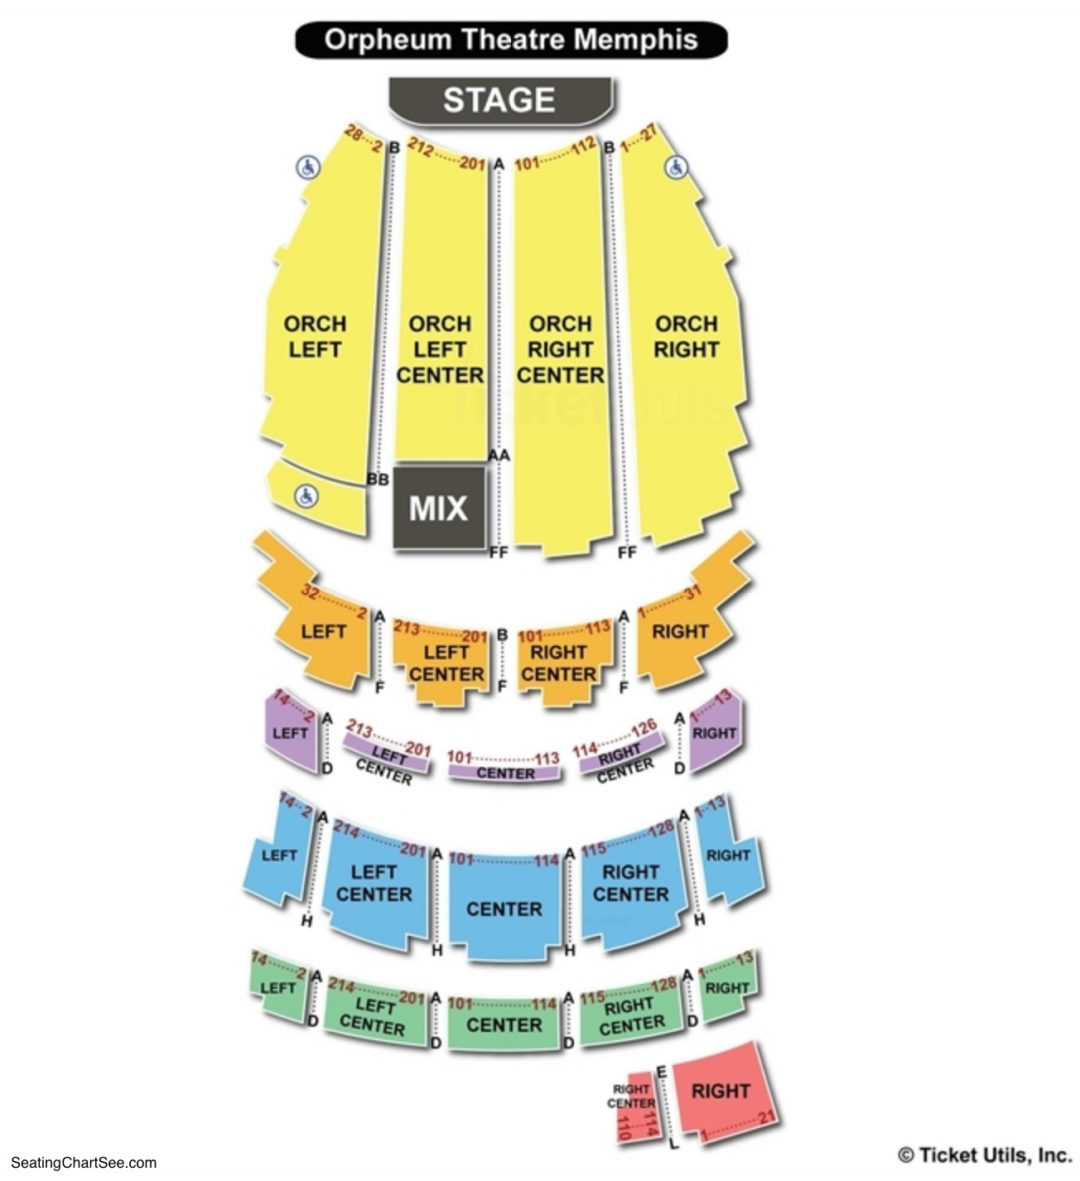 Orpheum Theatre Memphis Seating Chart Seating Charts Tickets